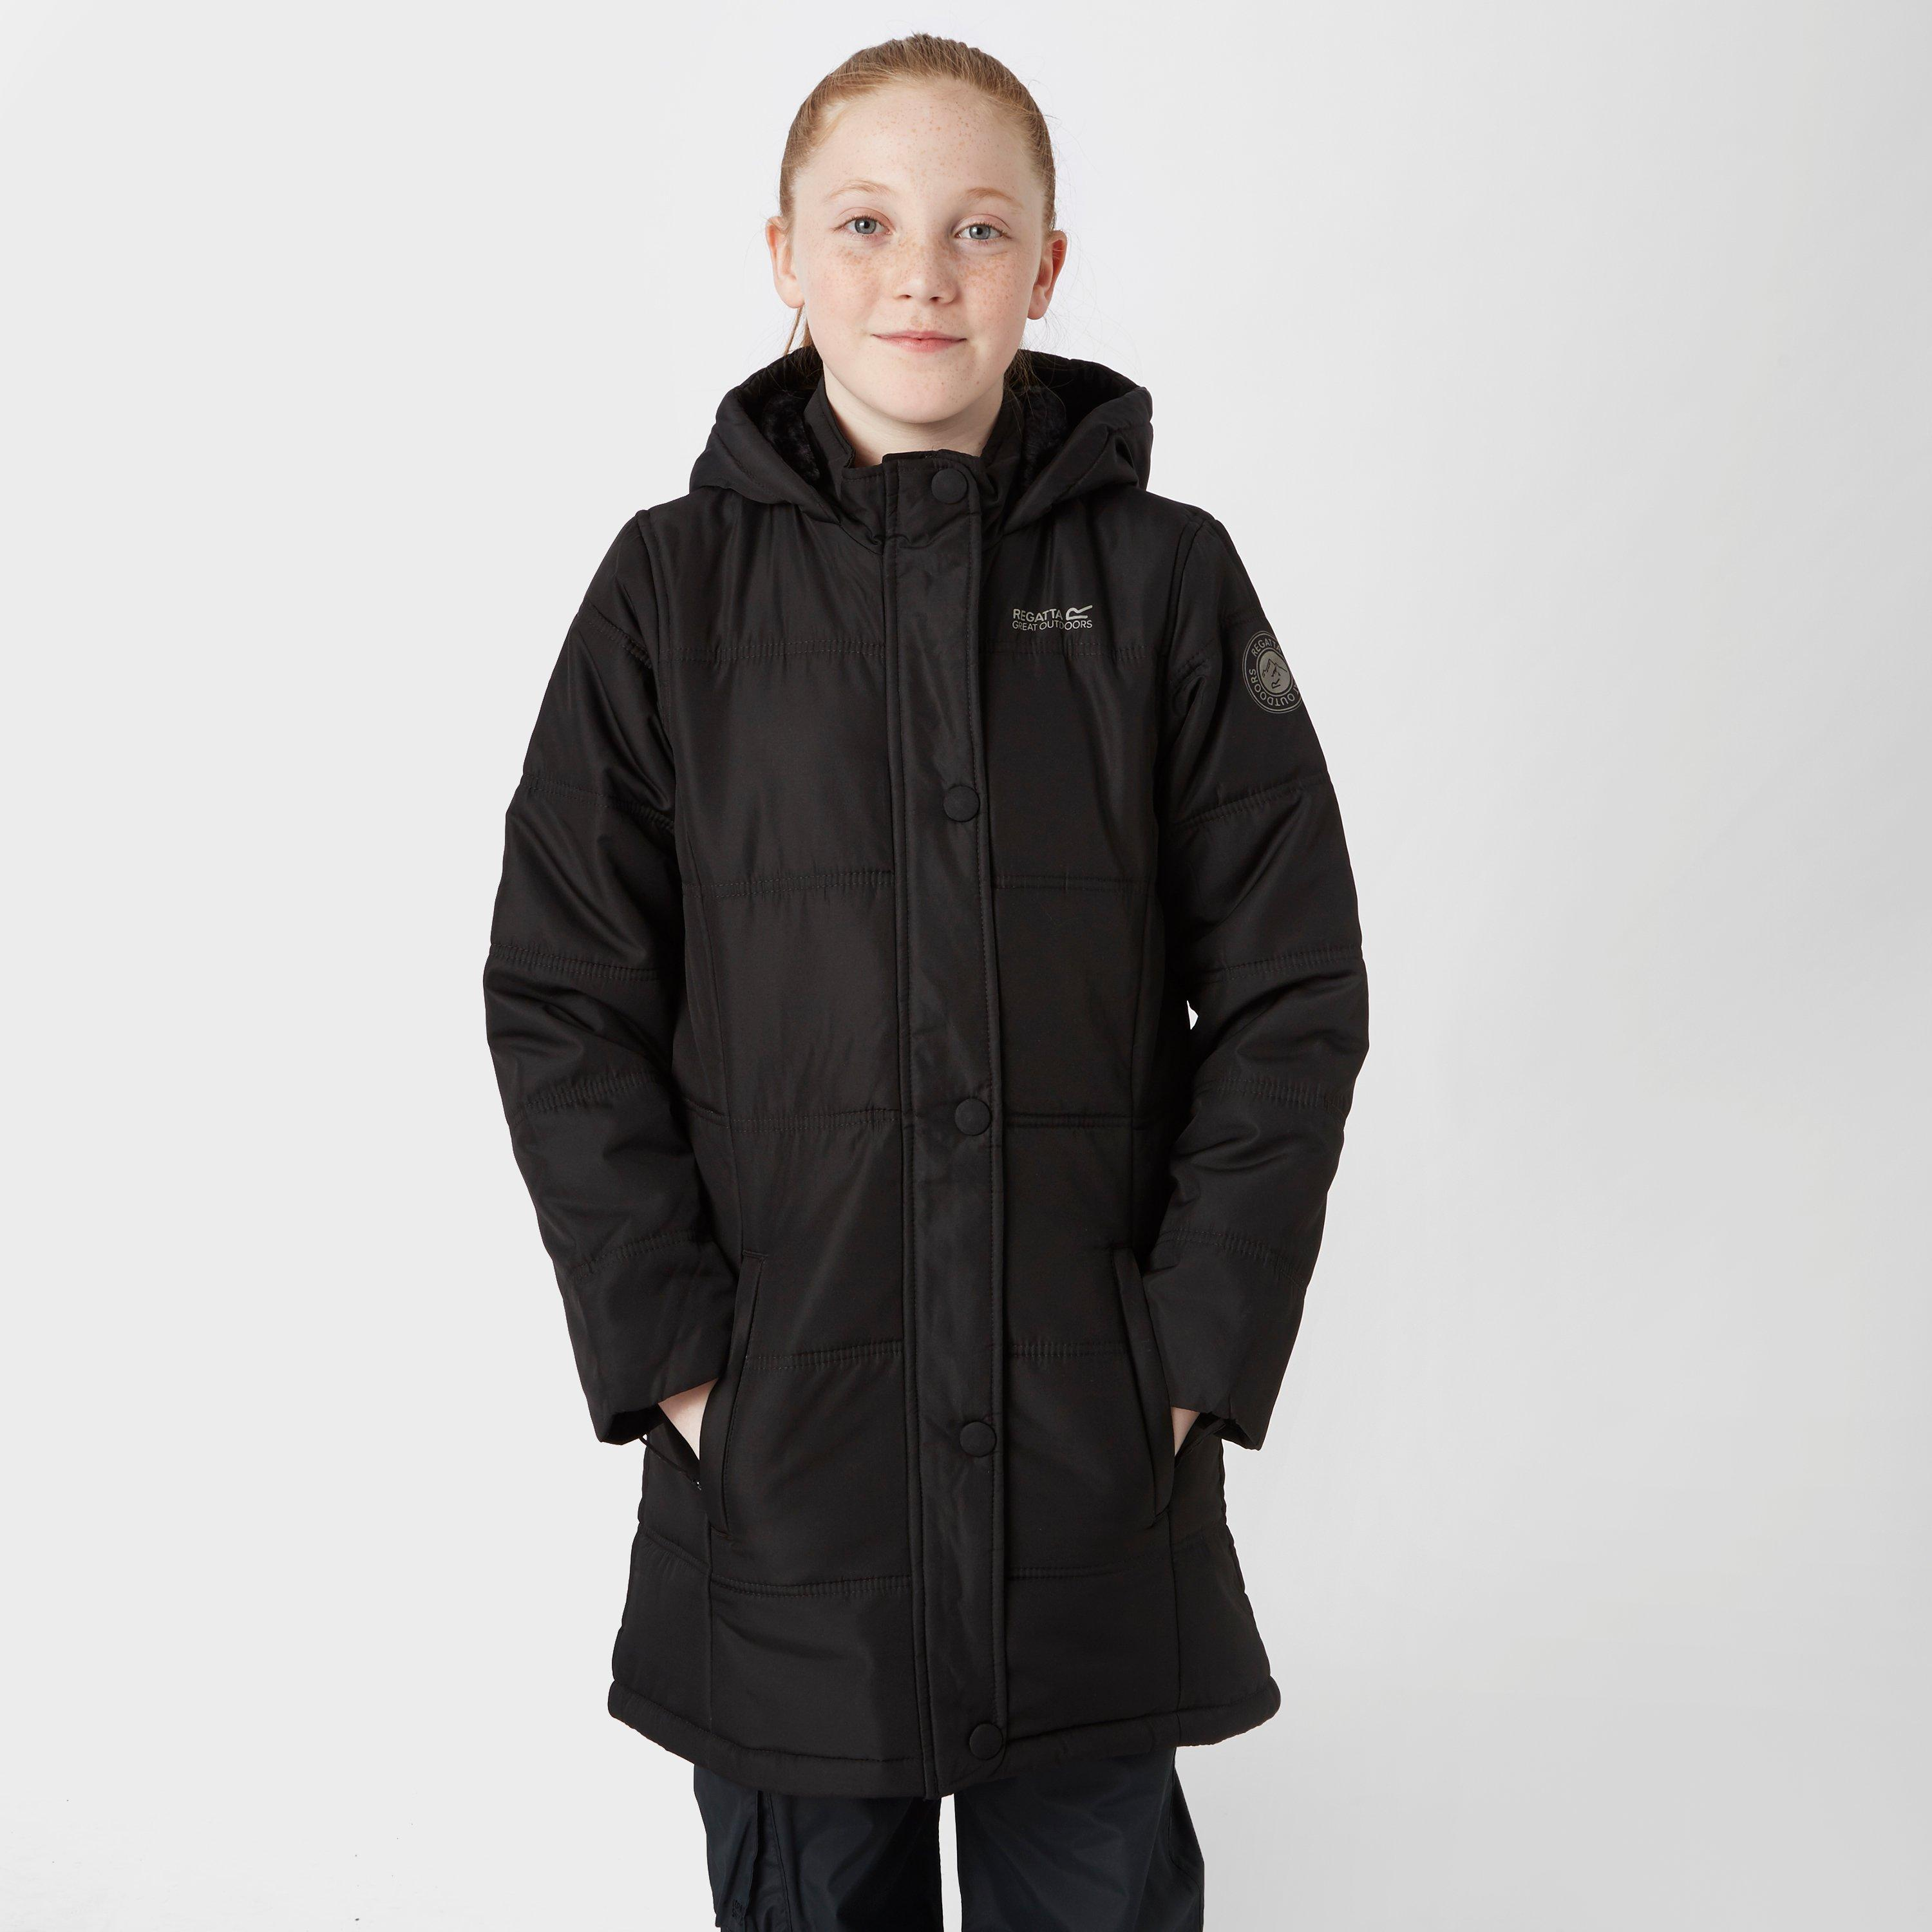 68f2caf10 Details about New Regatta Girl's Winter Hill Walking Casual Jacket